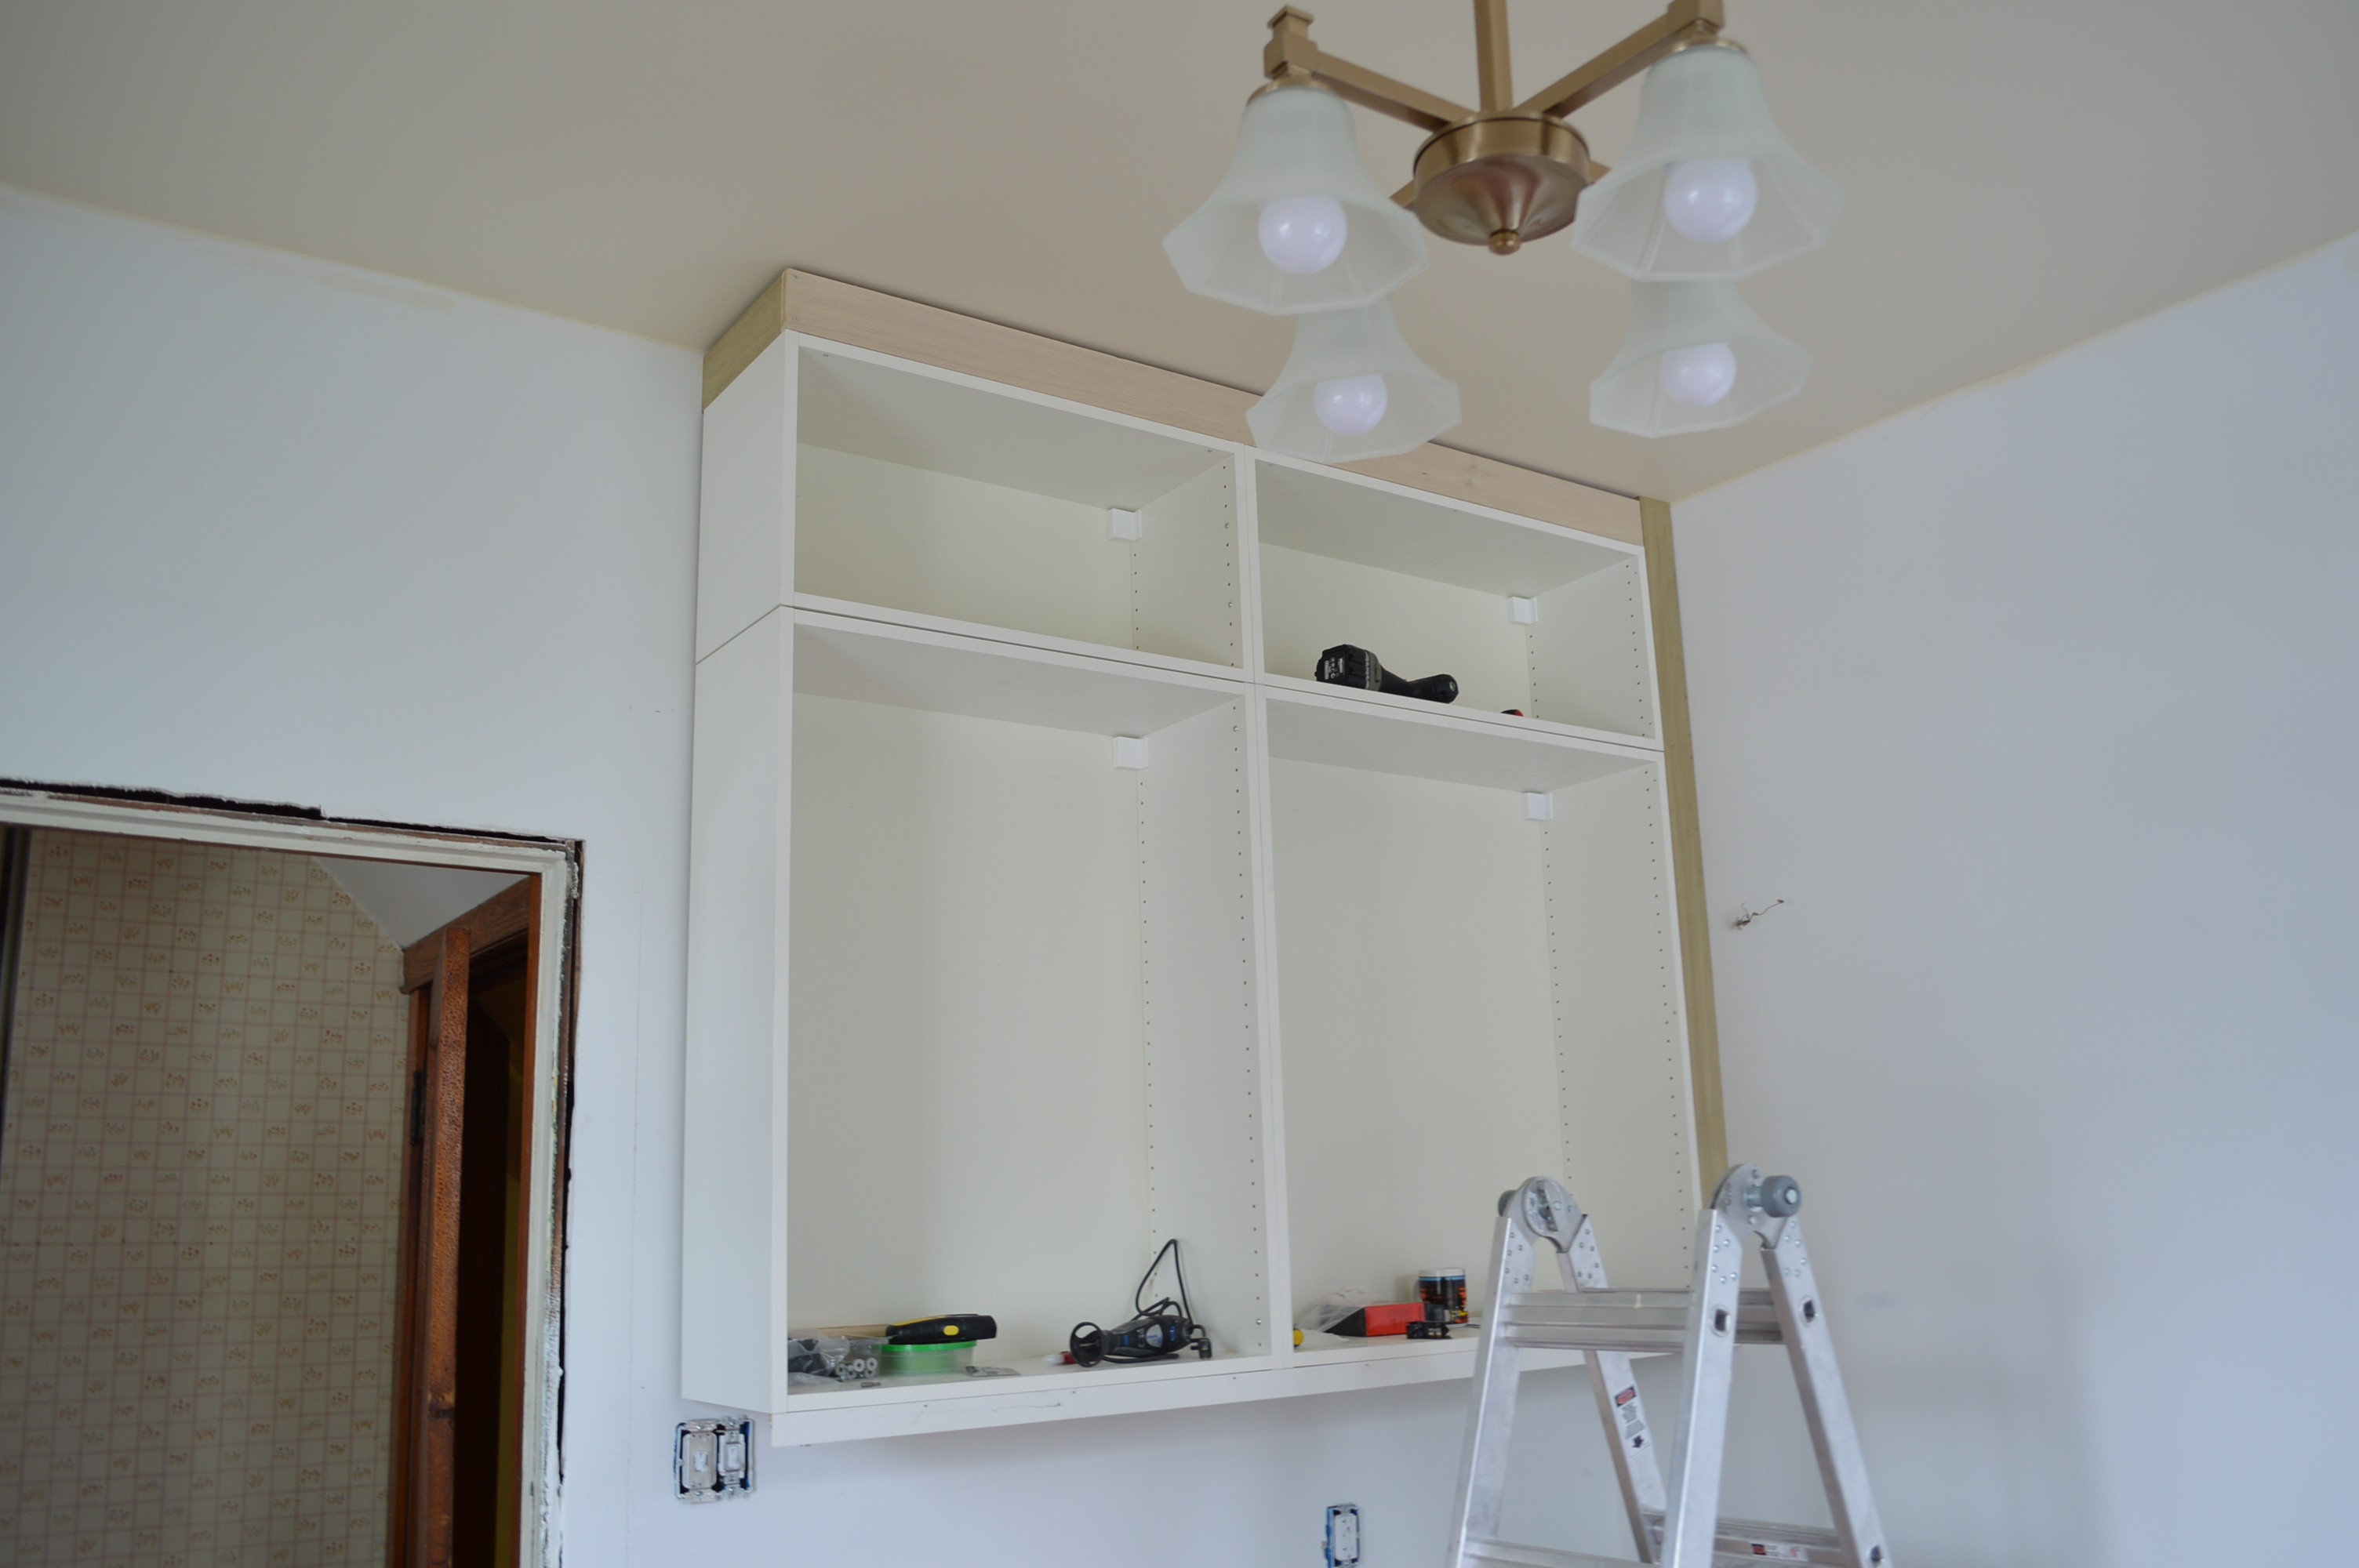 Ikea Kitchen Cabinets To Ceiling How To Scribe Ikea Cabinets St Paul Haus